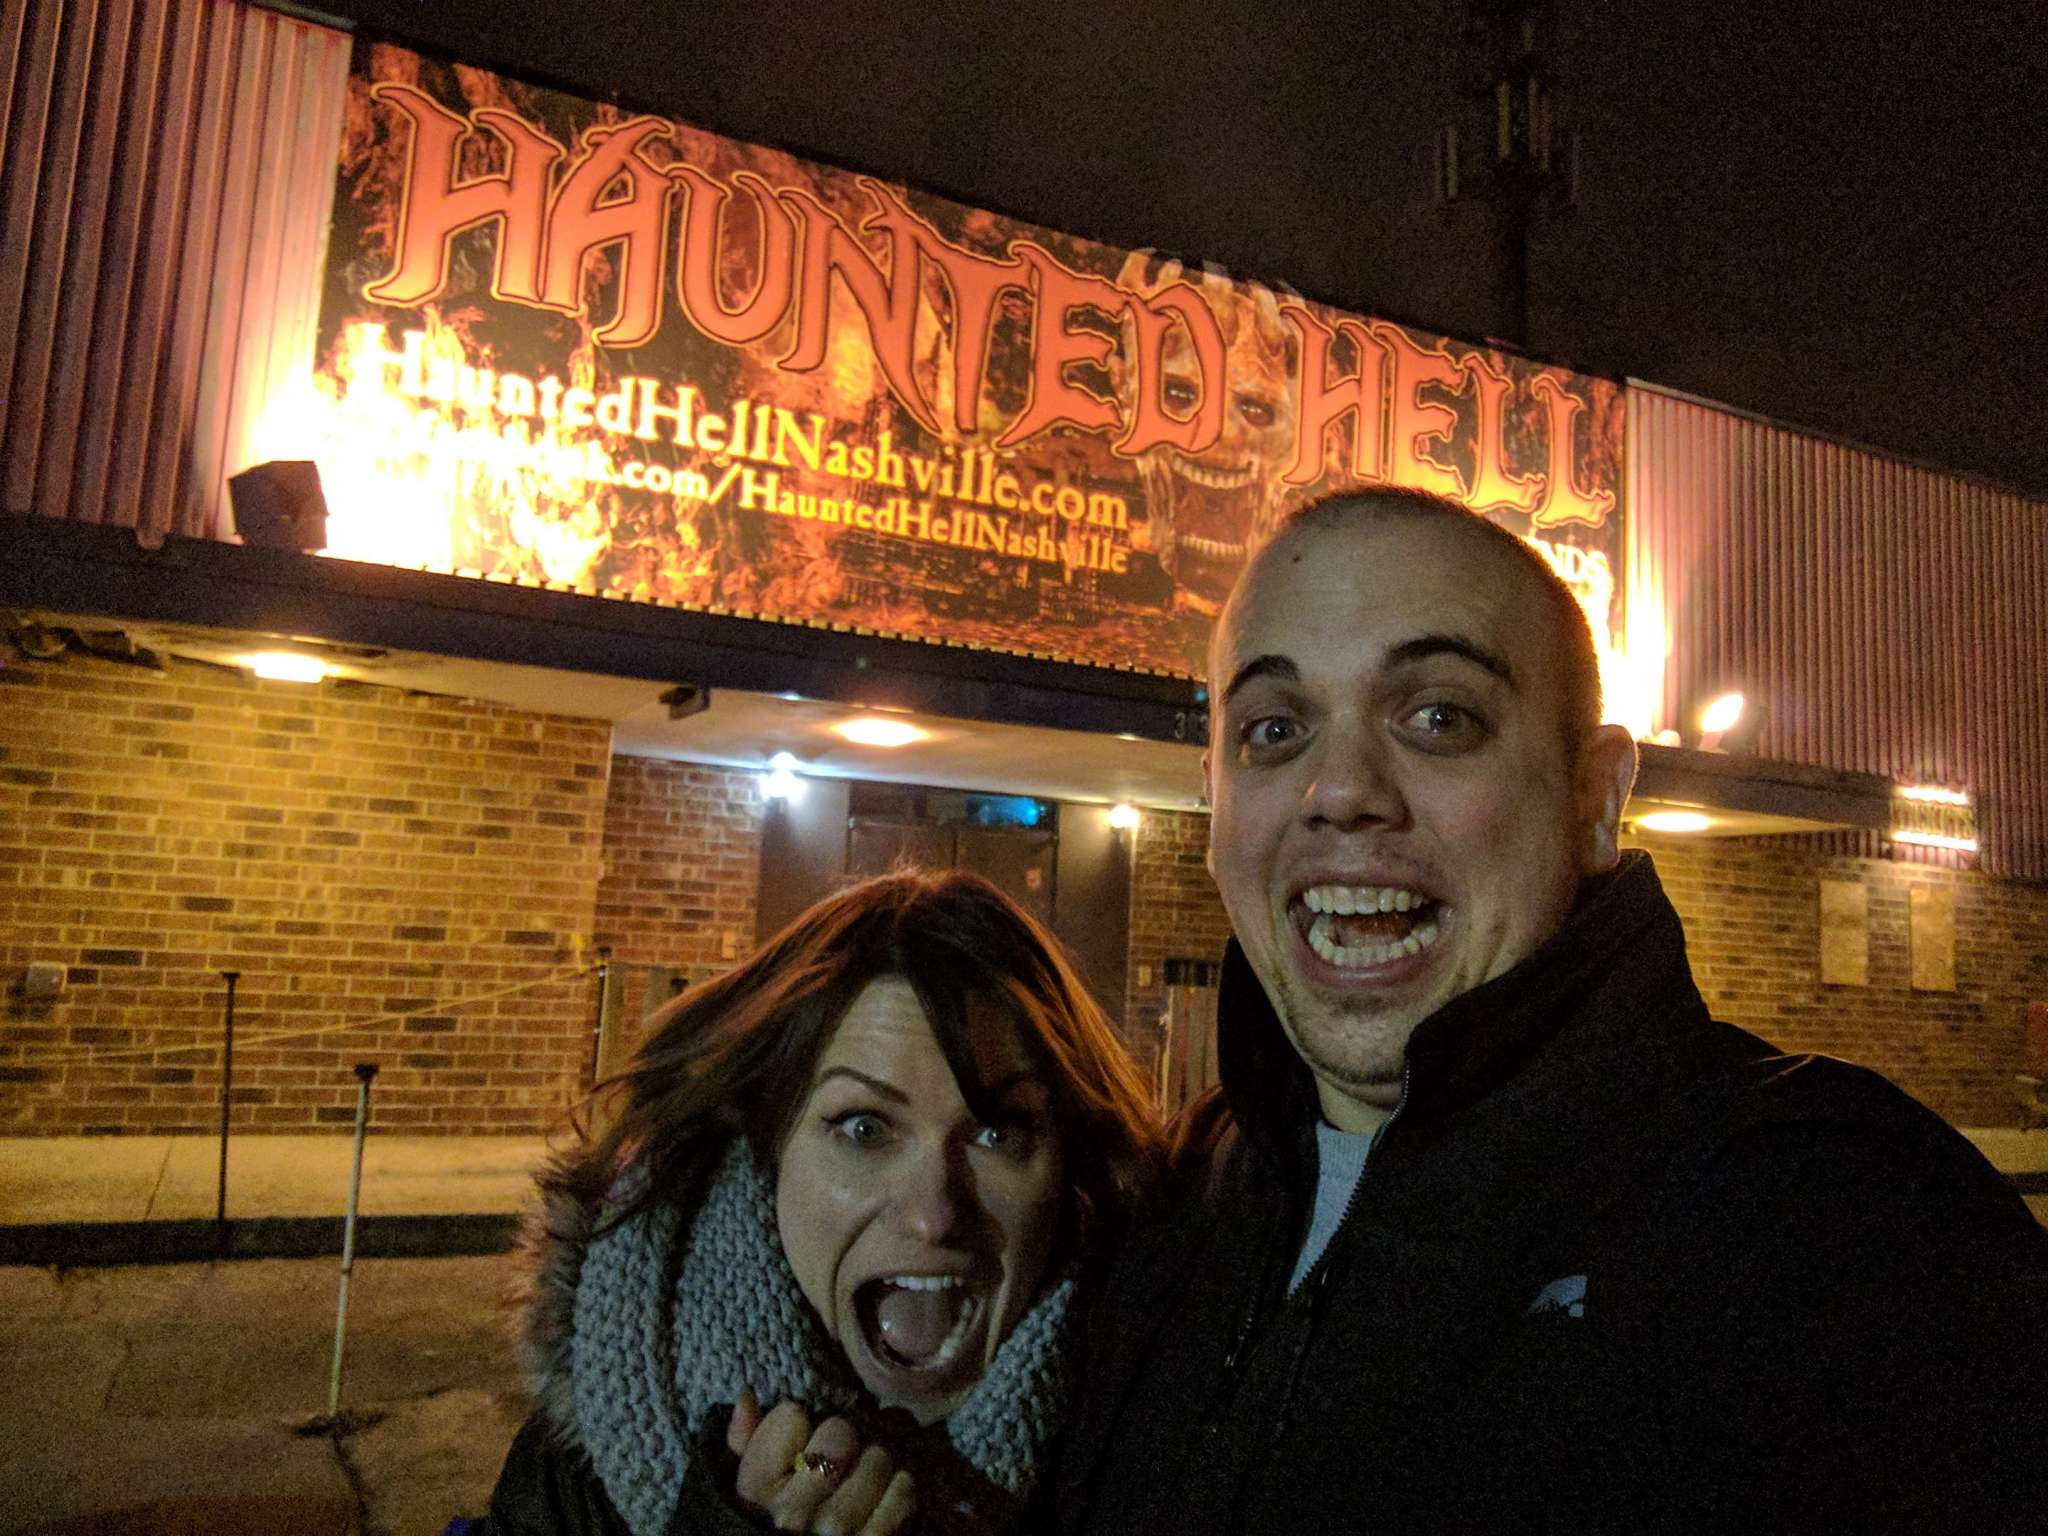 We survived our journey through Haunted Hell...just barely. Photo Credit: Alex Linebrink